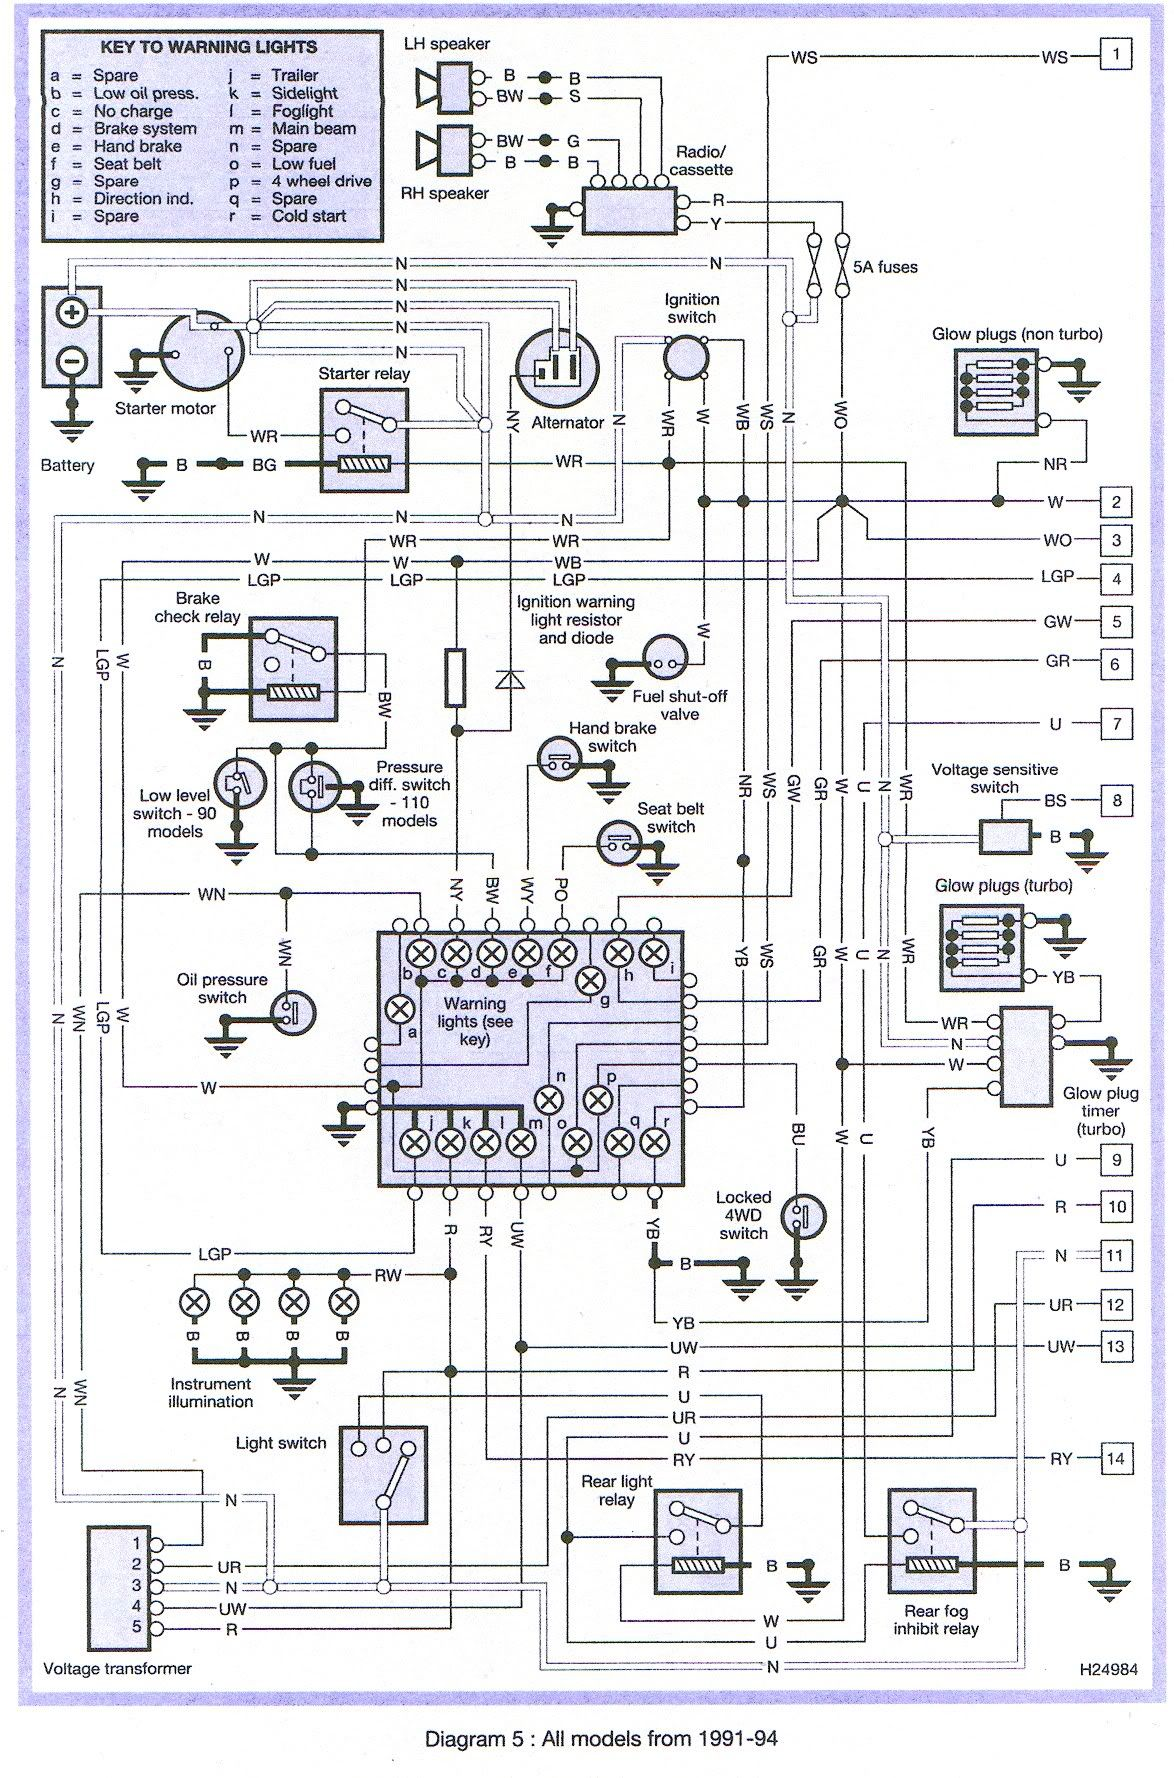 hight resolution of 2004 land rover engine diagram wiring diagram img 2008 range rover hse wiring diagram range rover hse wiring diagram